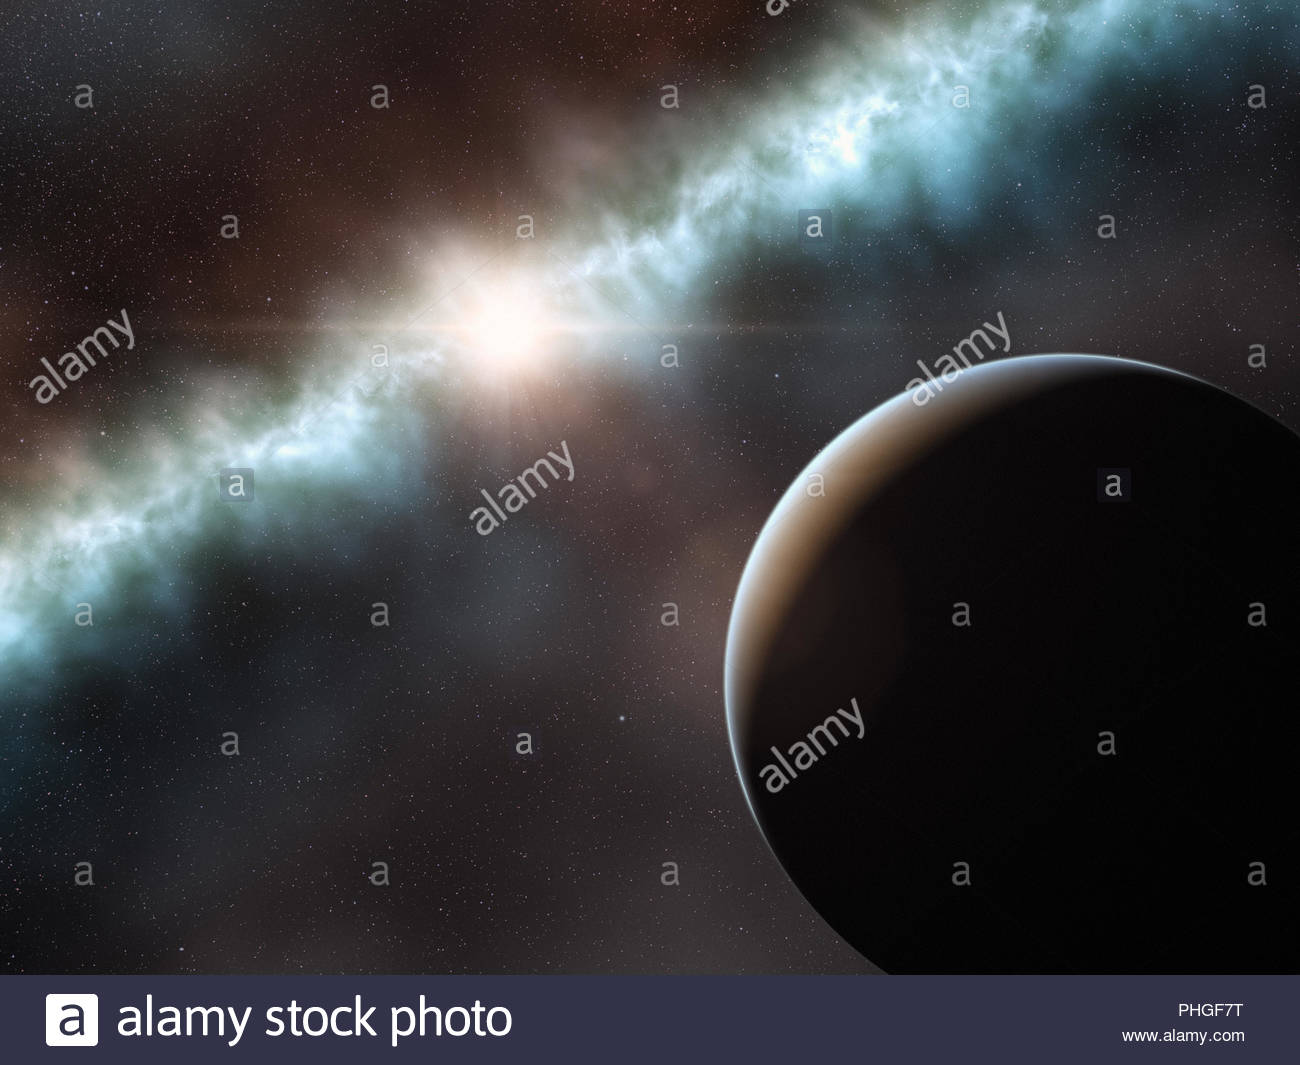 Illustration of a frequency comb and the sun - Stock Image